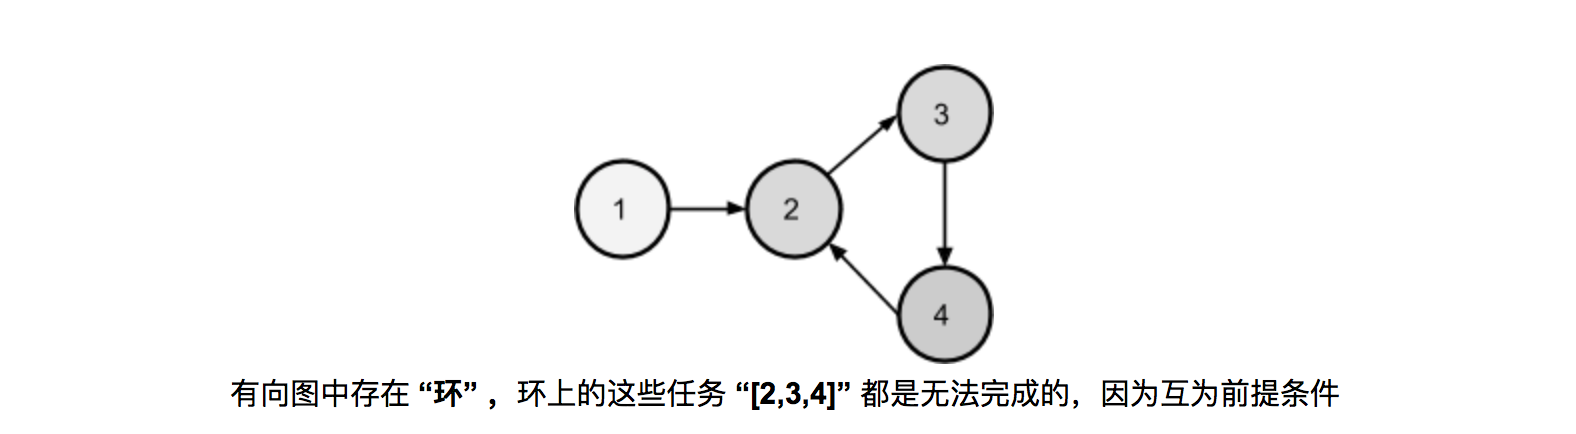 topological-sort-directed-circle-1